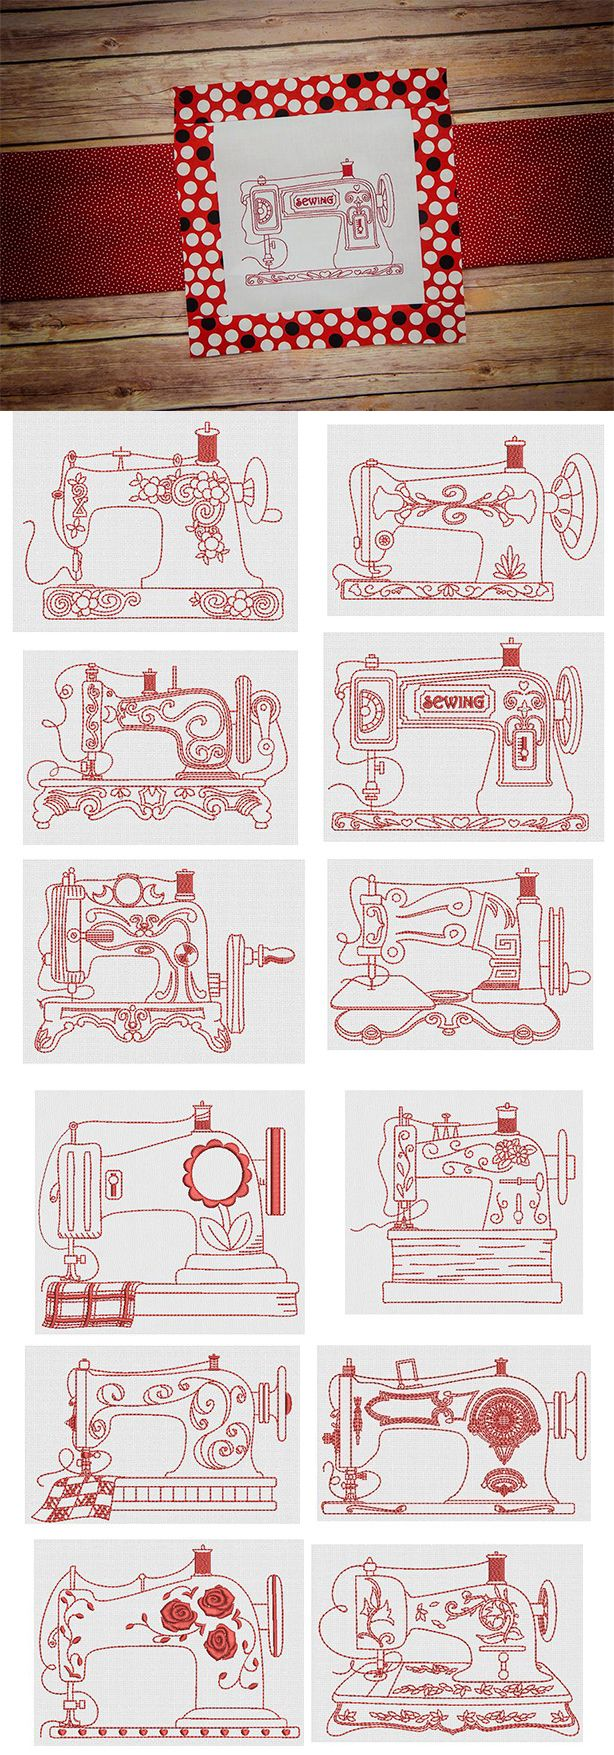 Vintage Sewing Machines Redwork design set is available for instant download at designsbyjuju.com